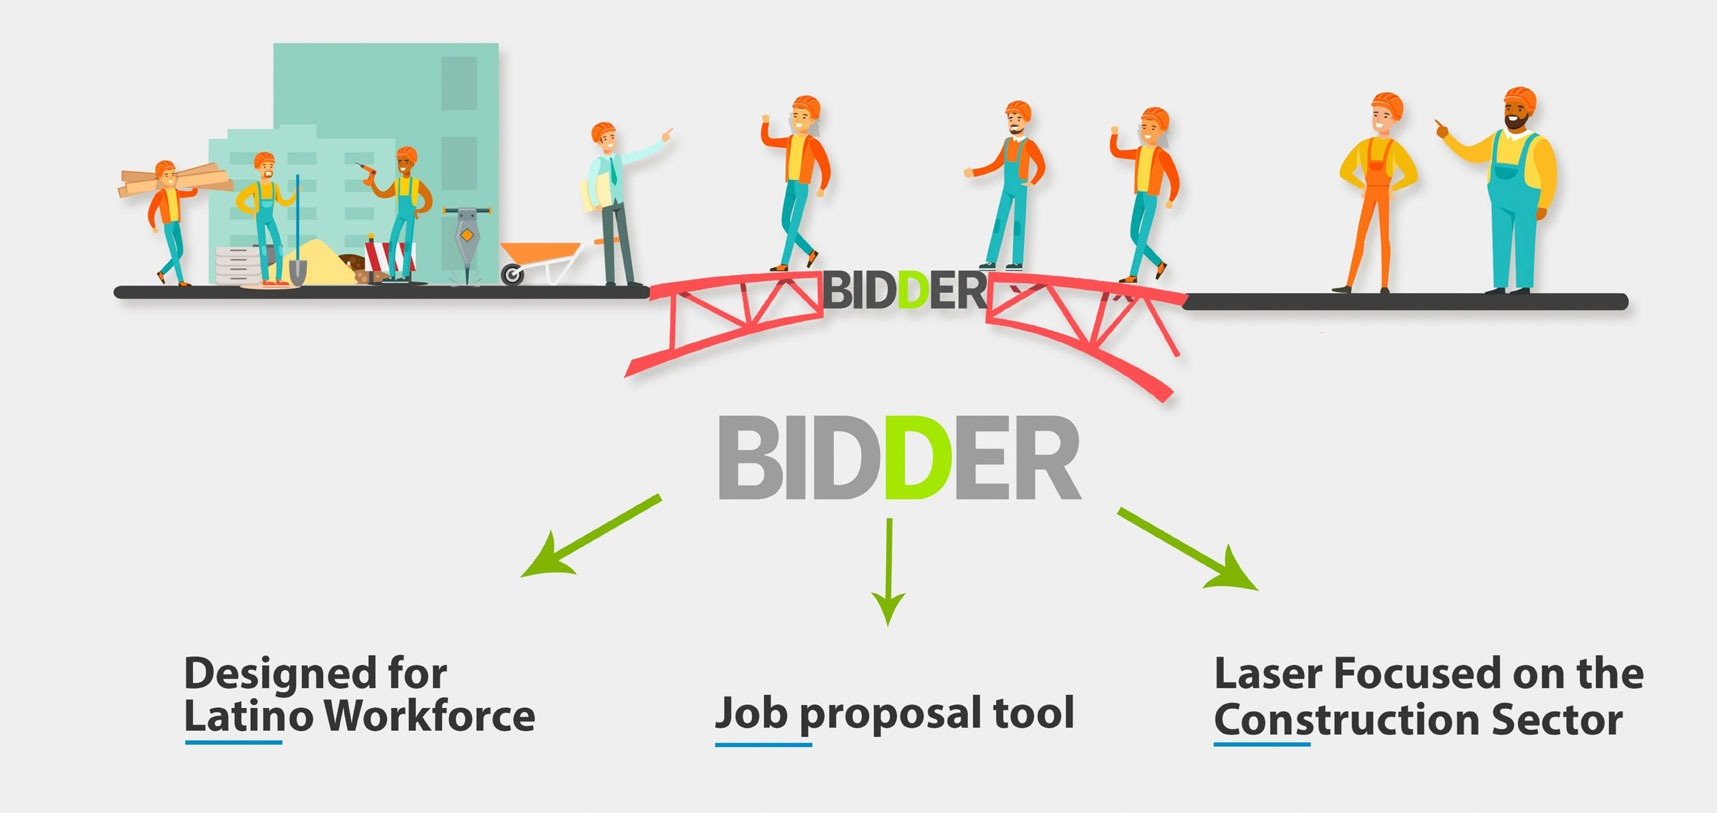 bidder-bridge2020